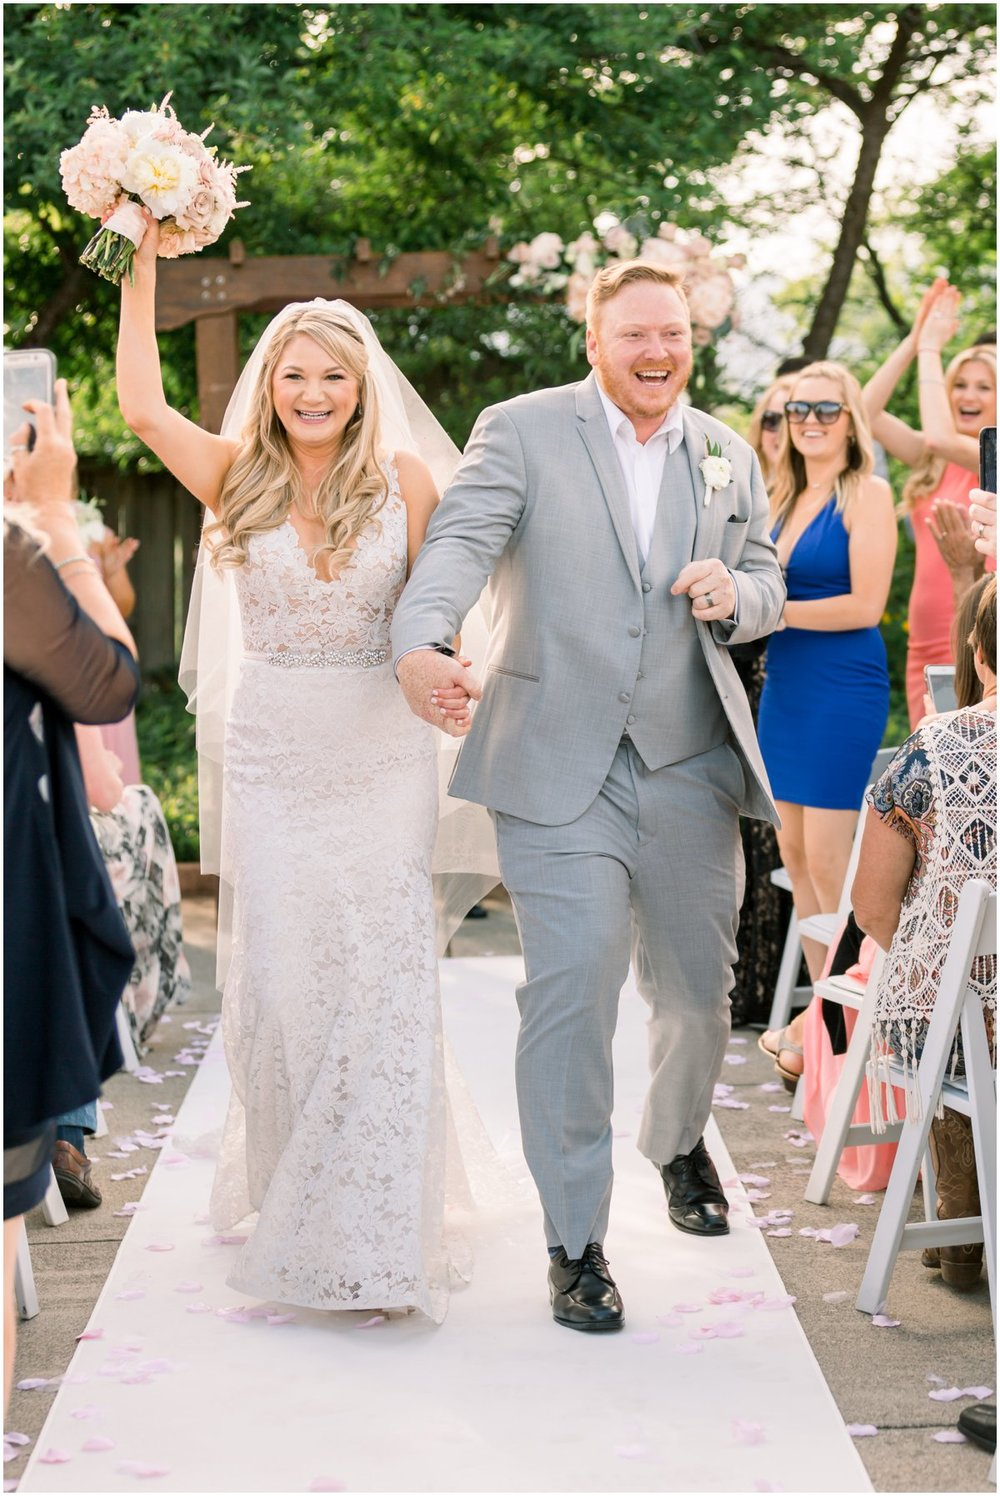 Cindy & Joseph walk out of their ceremony as Mr. and Mrs. This is one of my favorite photos ever!